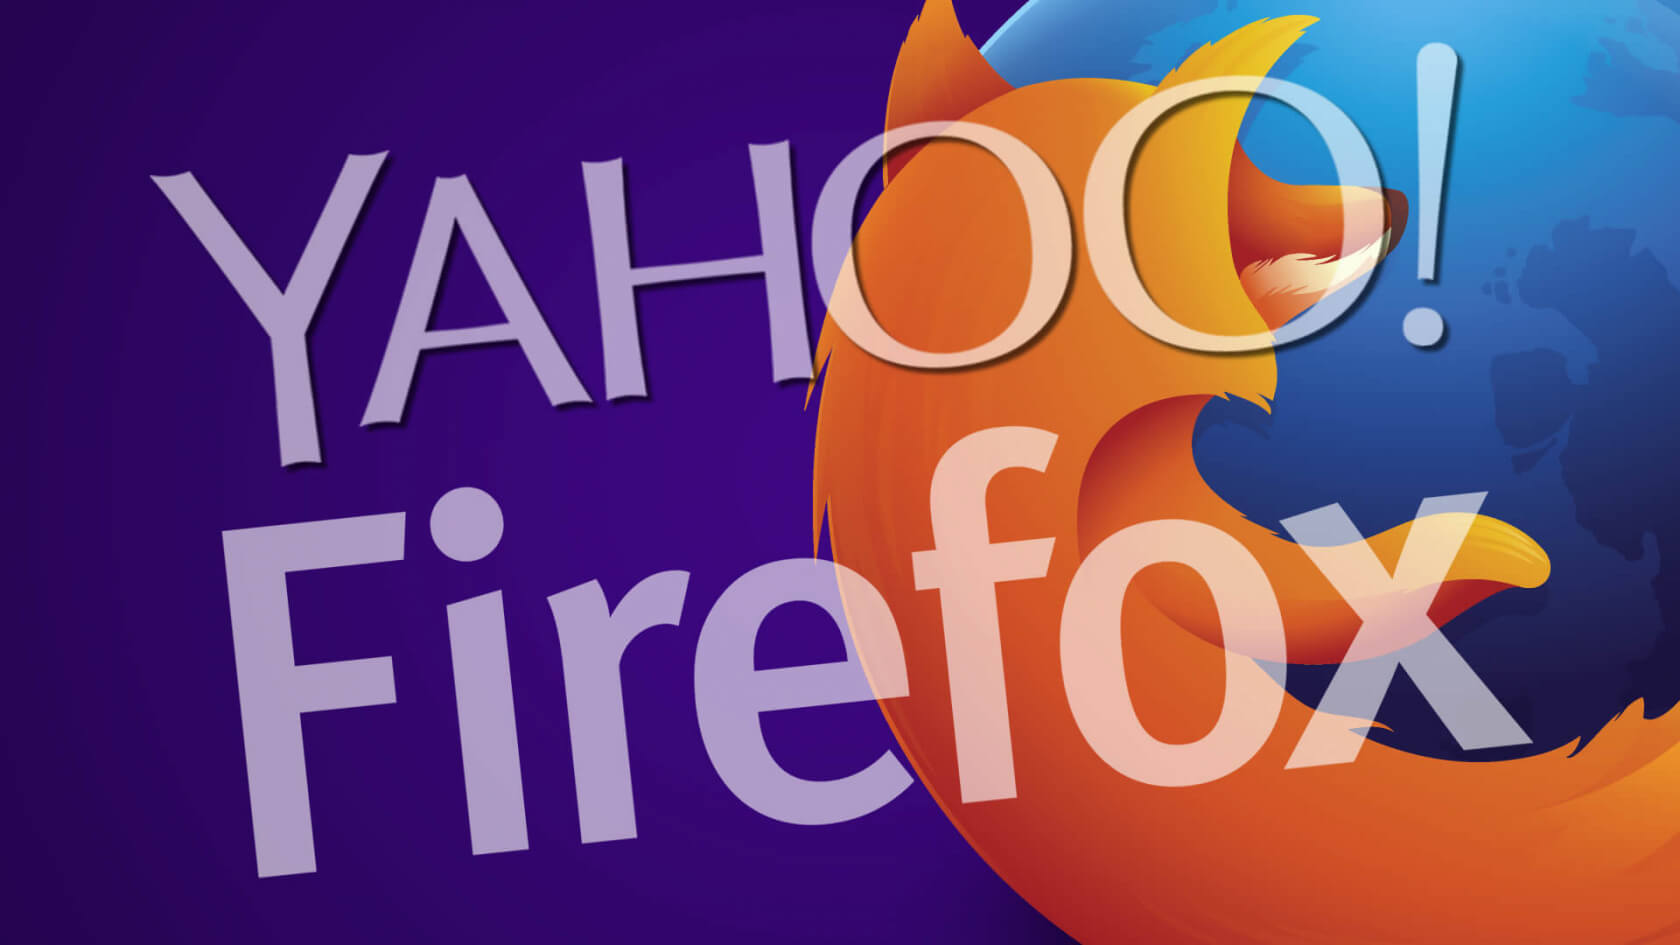 Yahoo Parent Filed a Complaint against Mozilla for breach of contract